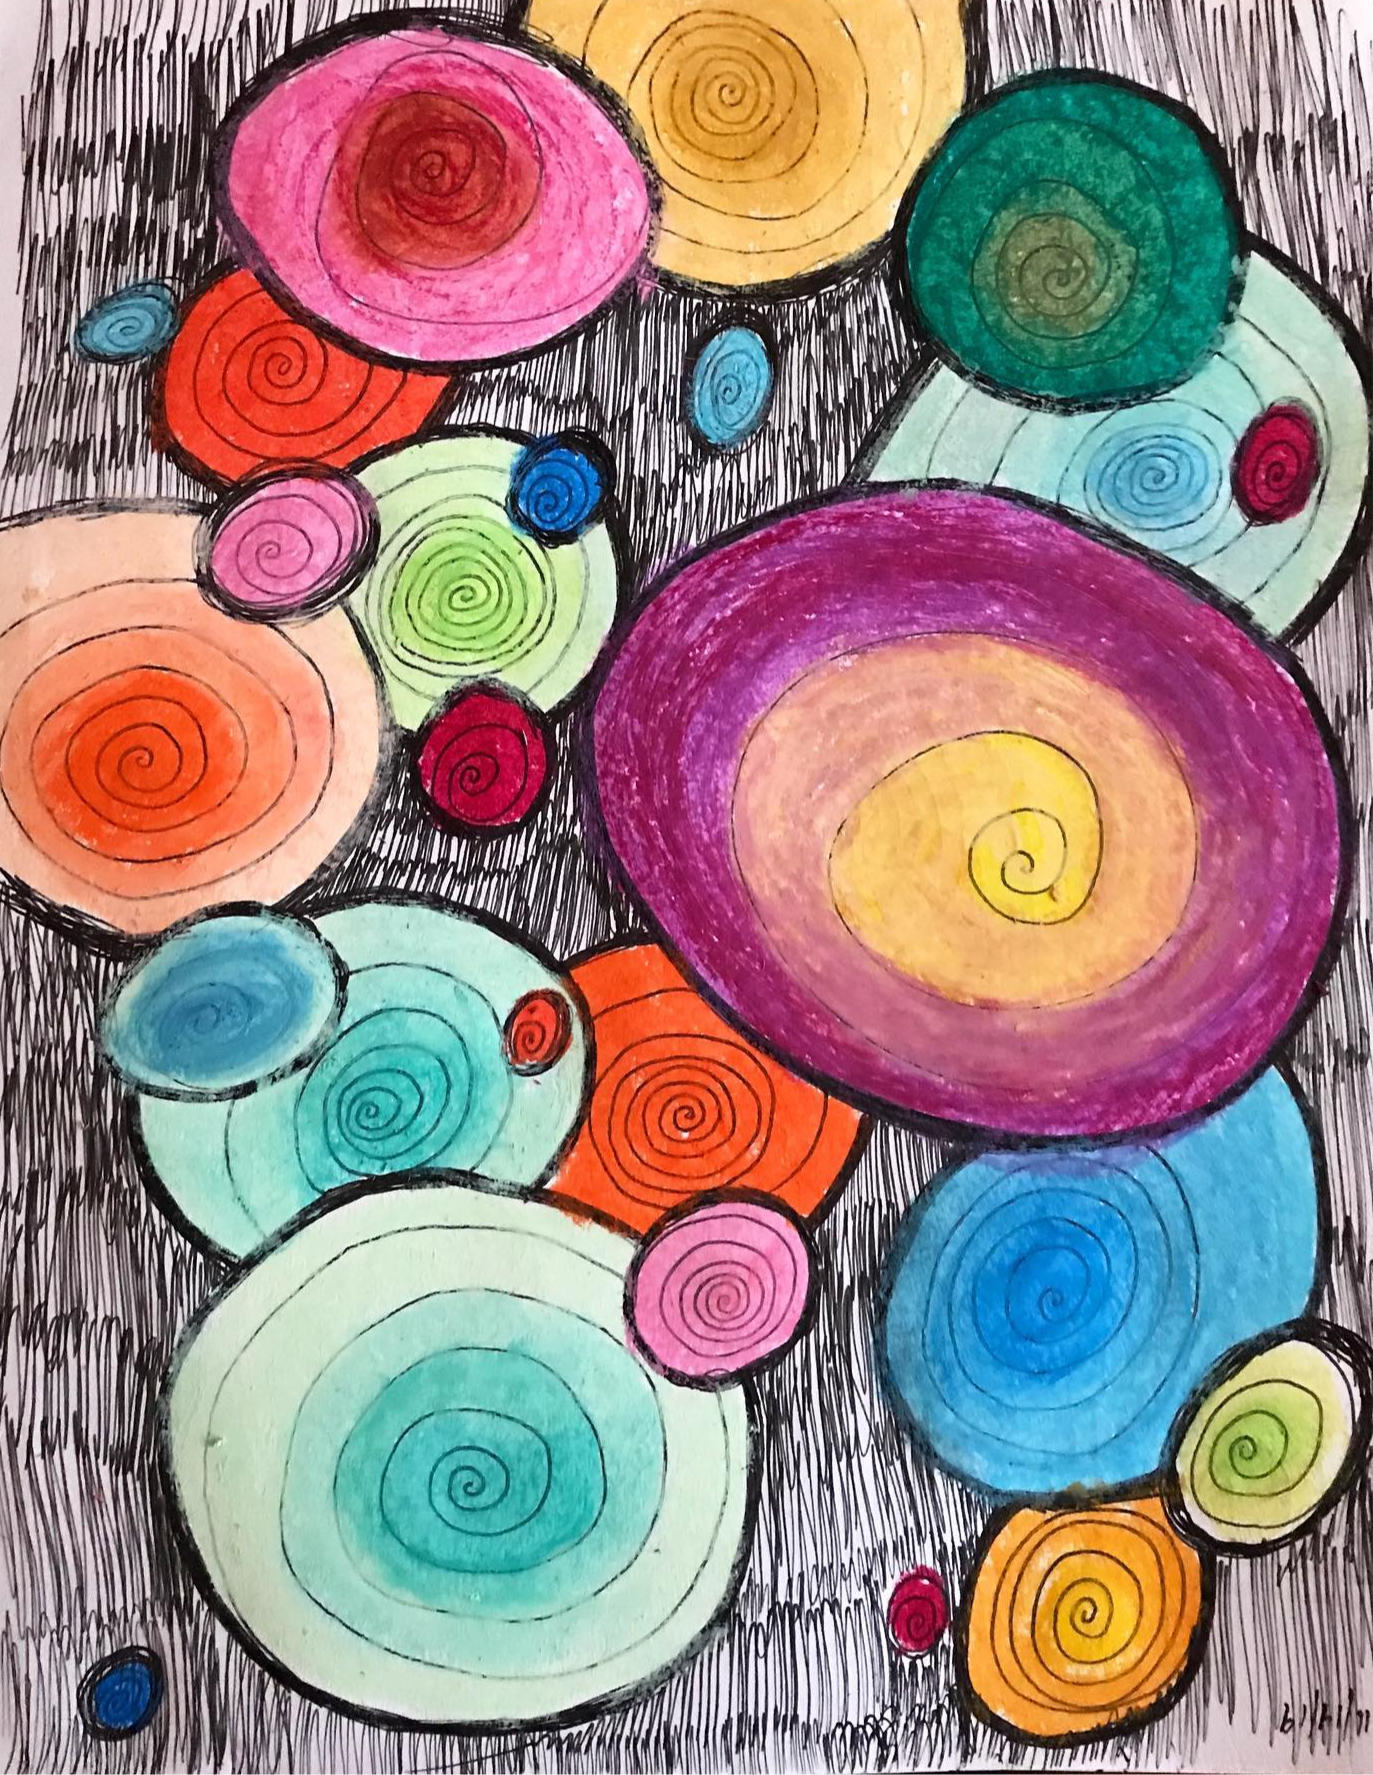 Sophomoric Swirls in Color